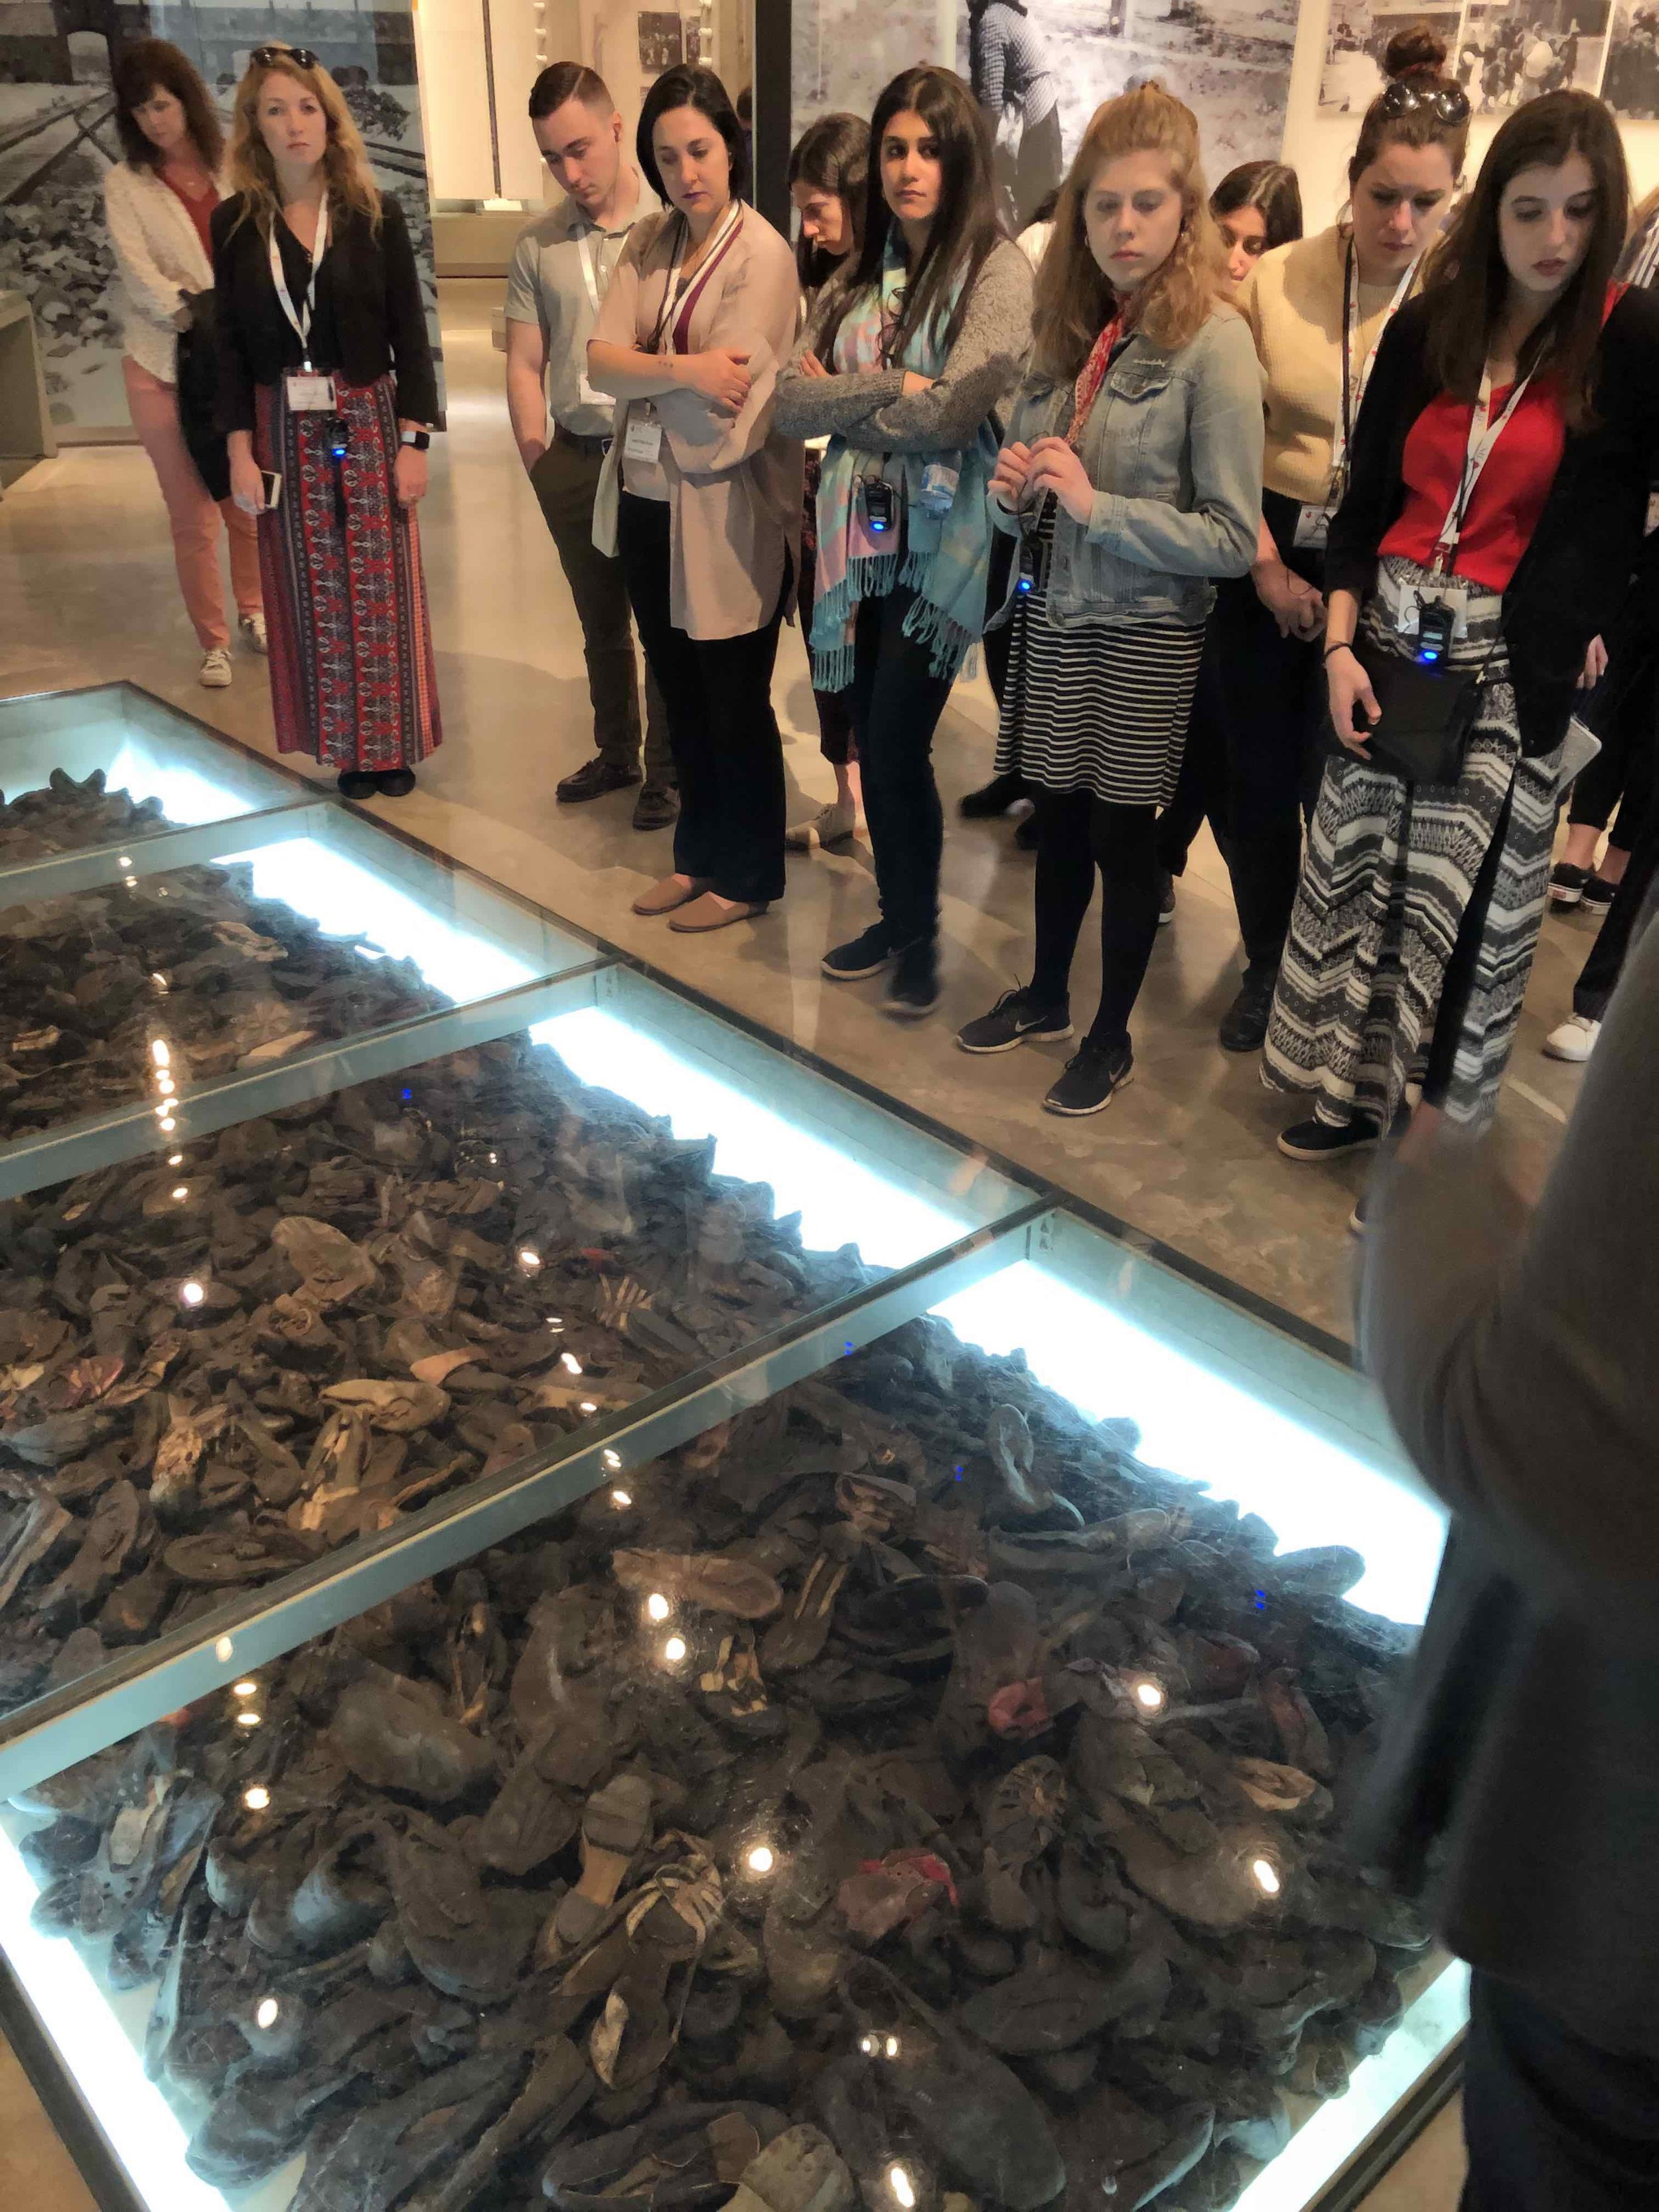 Students absorb the display of shoes collected from Holocaust victims.